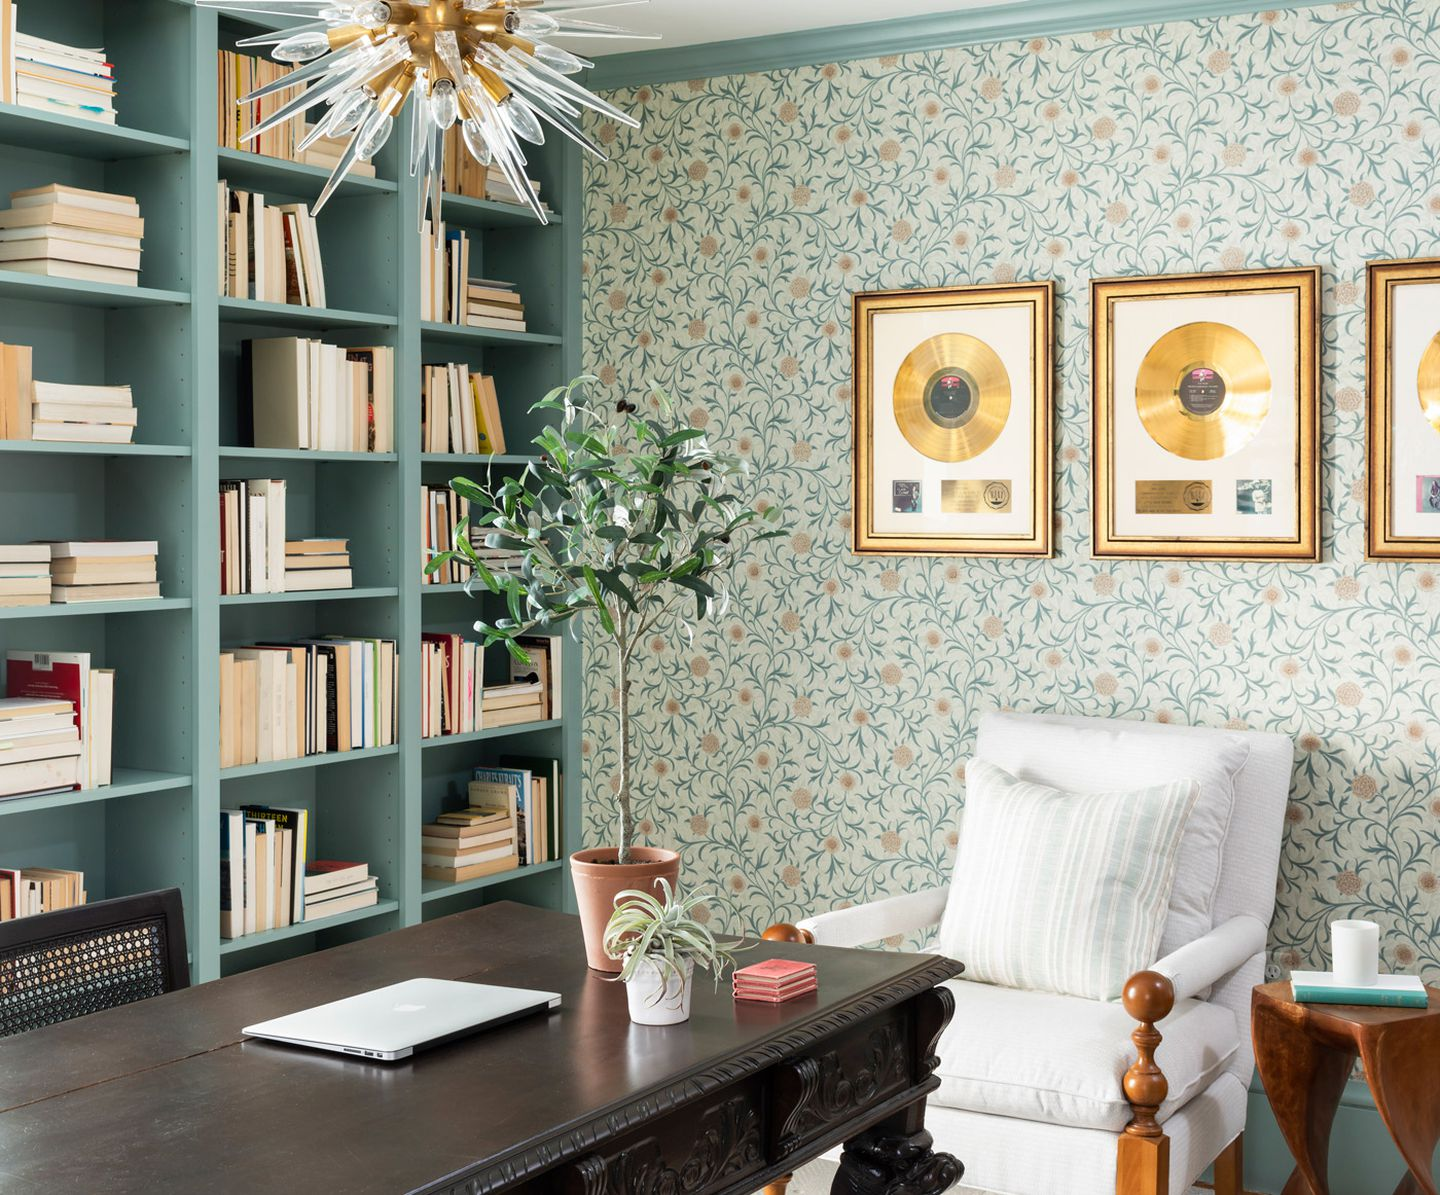 Home Design Tips For Designing A Library In A Digital Age The Boston Globe